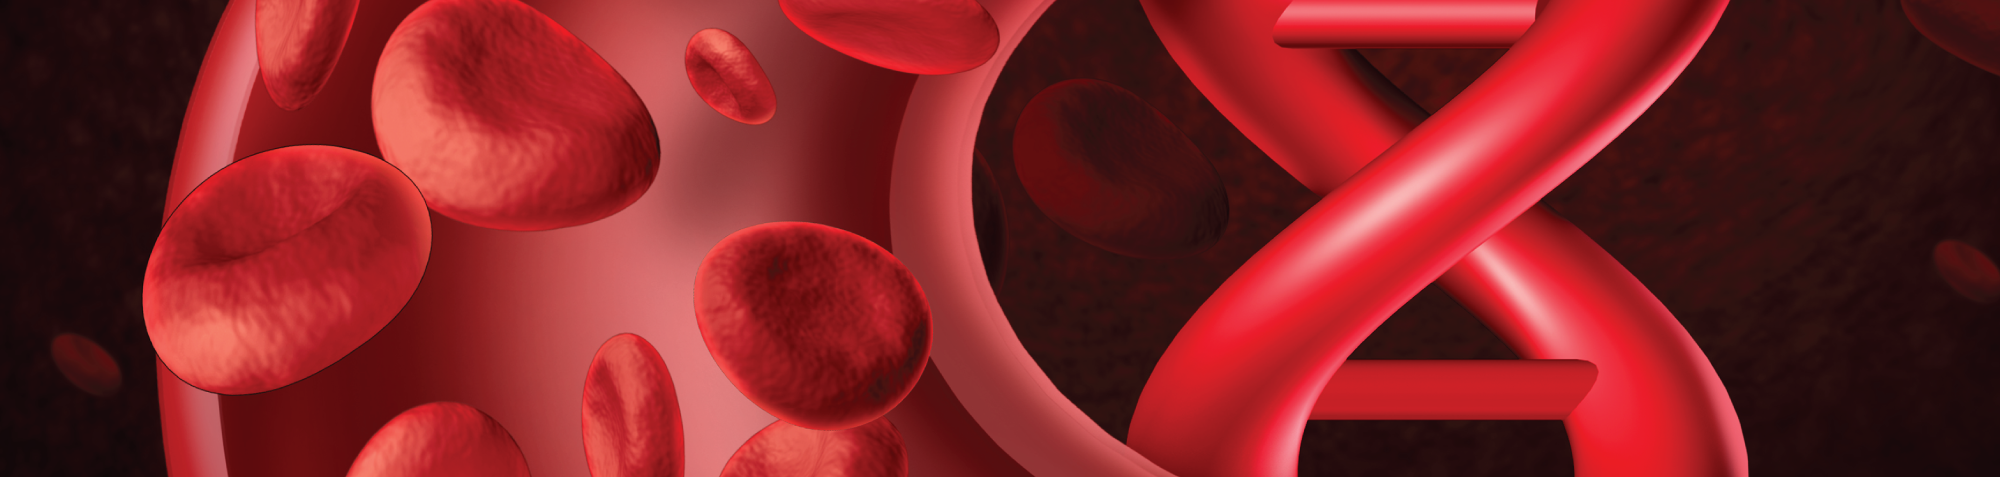 DiaCarta Demos Liquid Biopsy Use for ColoScape Assay, Plans to Market Expanded Application